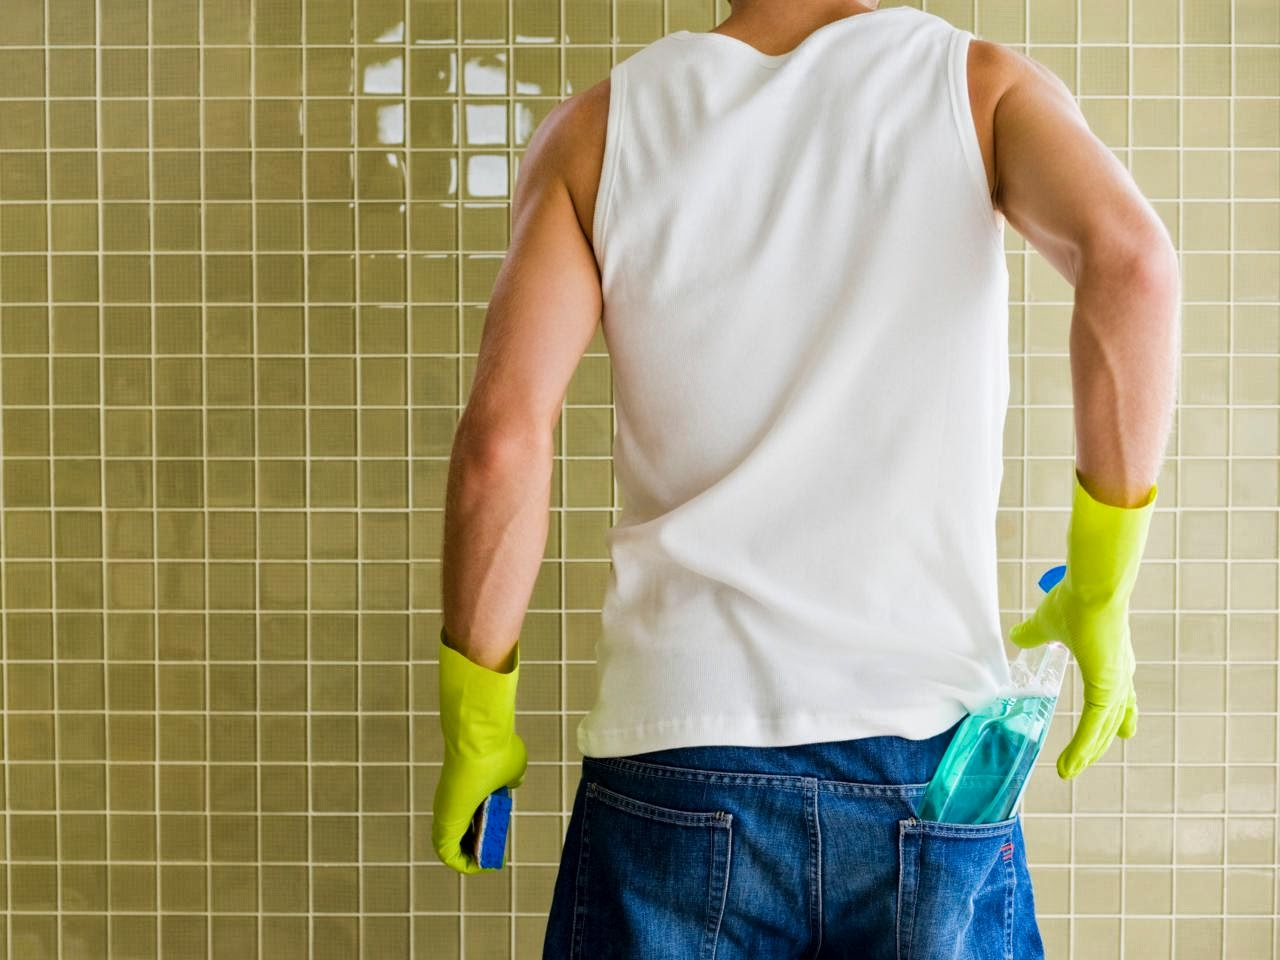 Home Remodeling - Cleaning bathroom walls